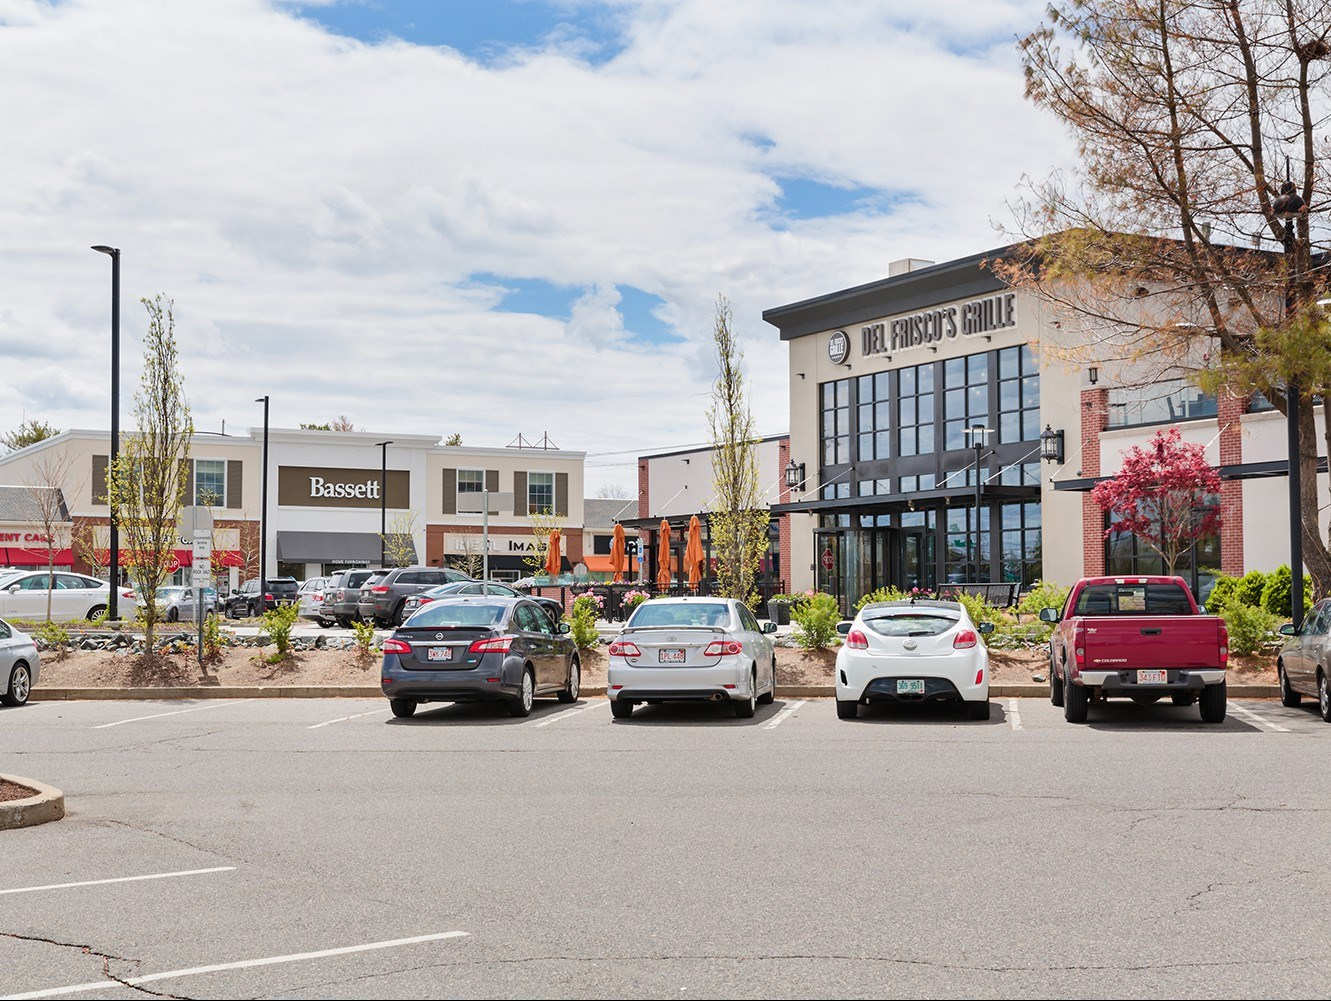 Middlesex marketplace 90 92 middlesex turnpike burlington ma retail real estate development trammell crow